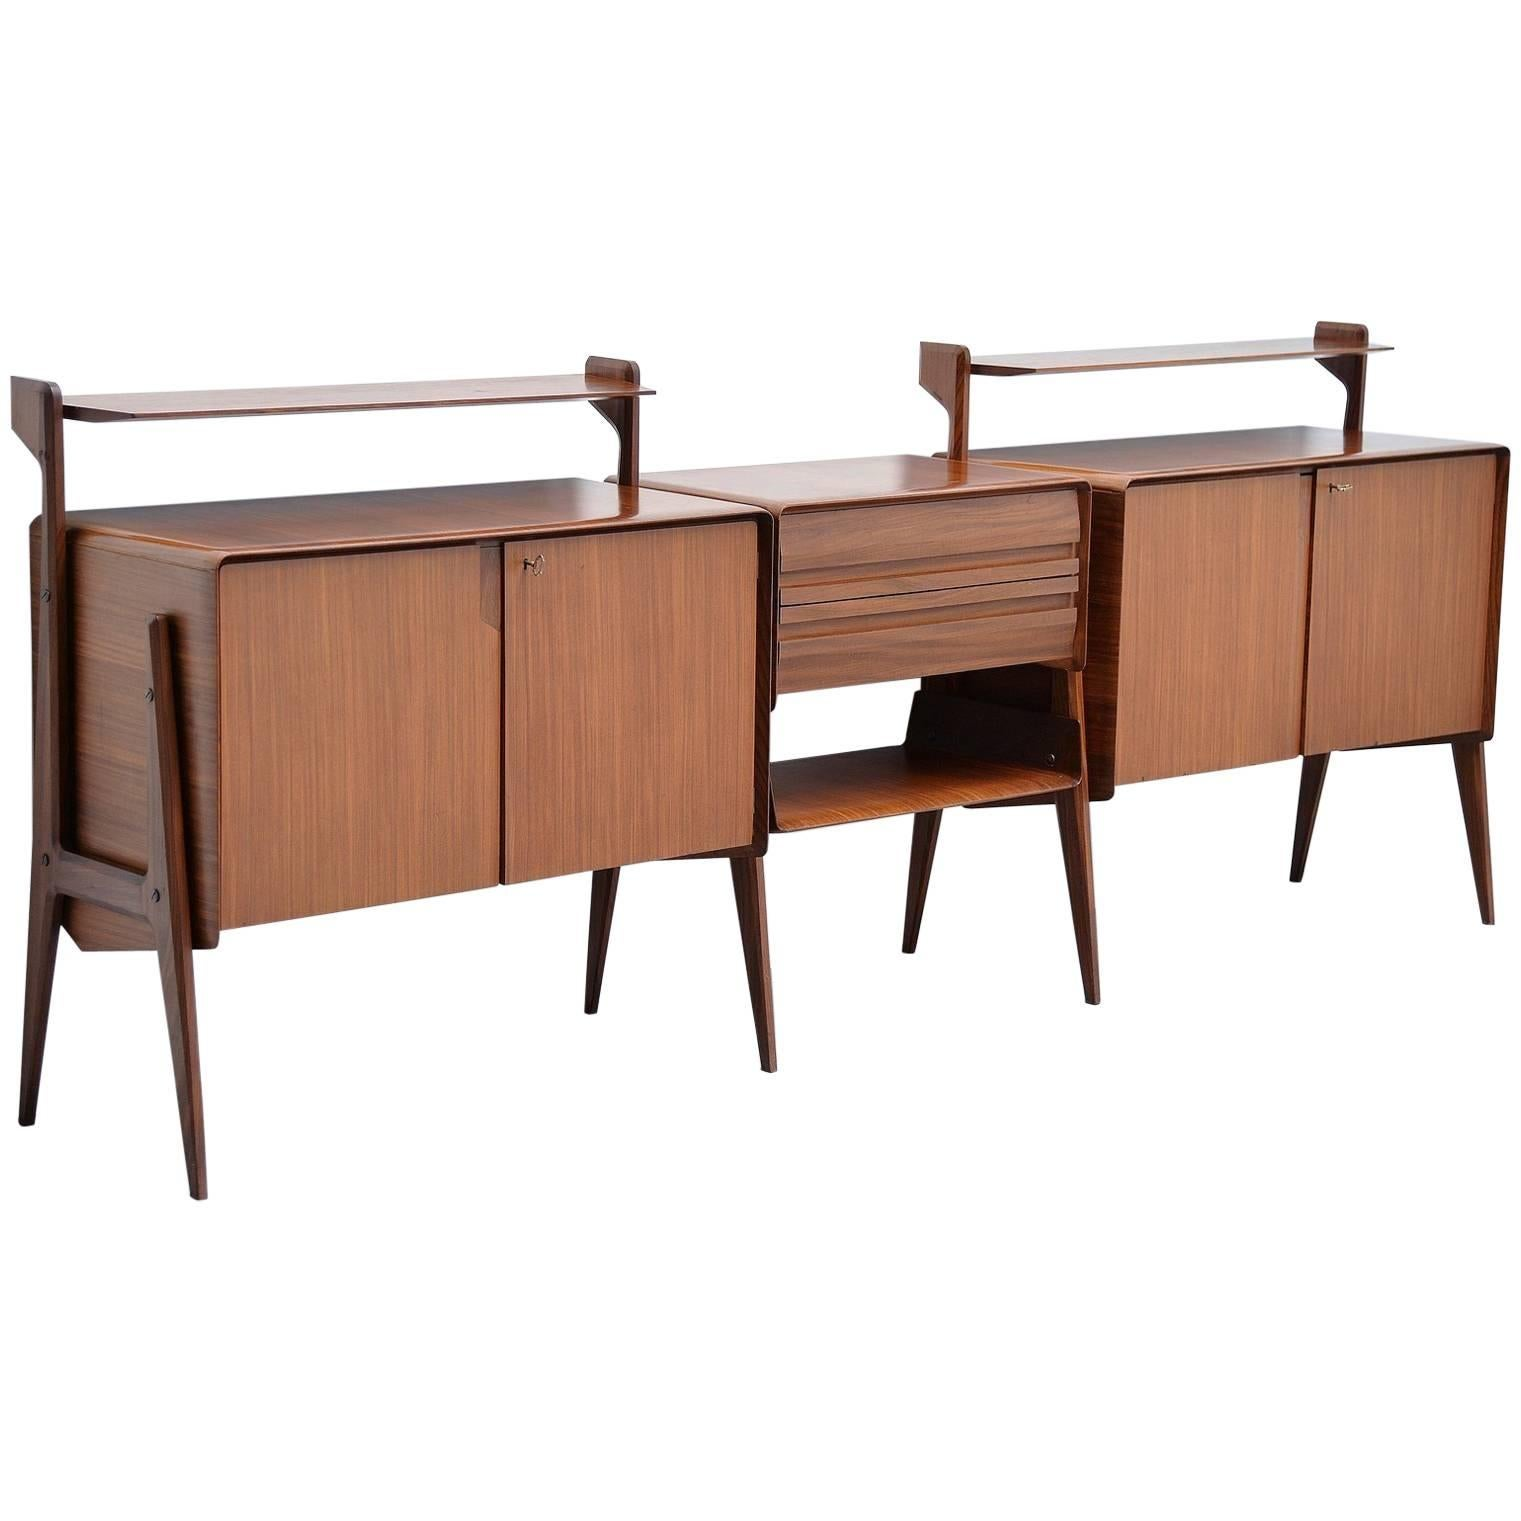 Attributed to Ico Parisi long sideboard Cantu, Italy, 1955